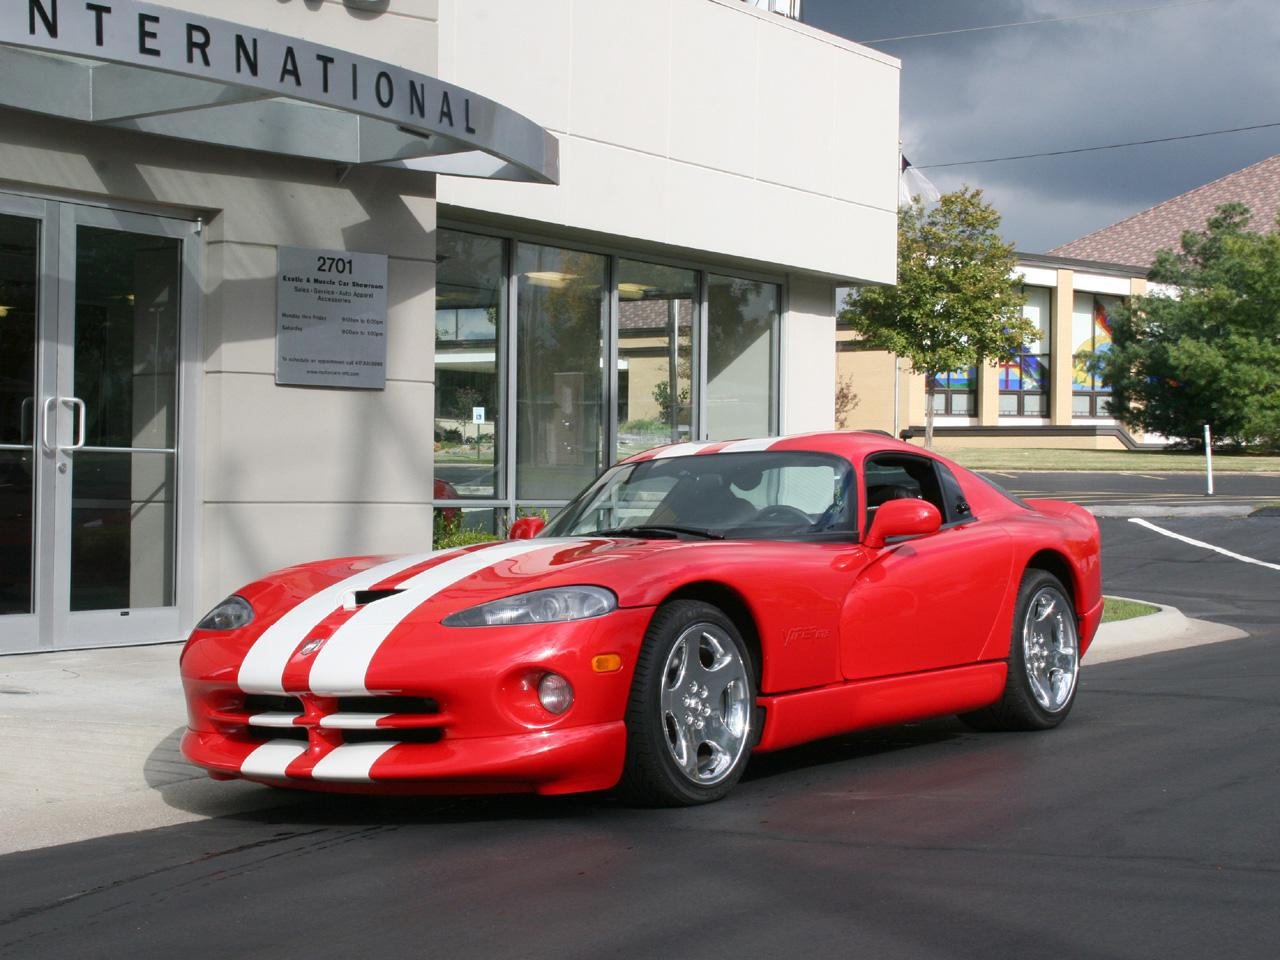 a personal recount of driving dodge viper Dodge viper gtc, 1 of 1 custom-order program debuts [w/video] snakes on a more personal plane: dodge viper gtc, 1 of 1 custom-order program debuts [w/video.